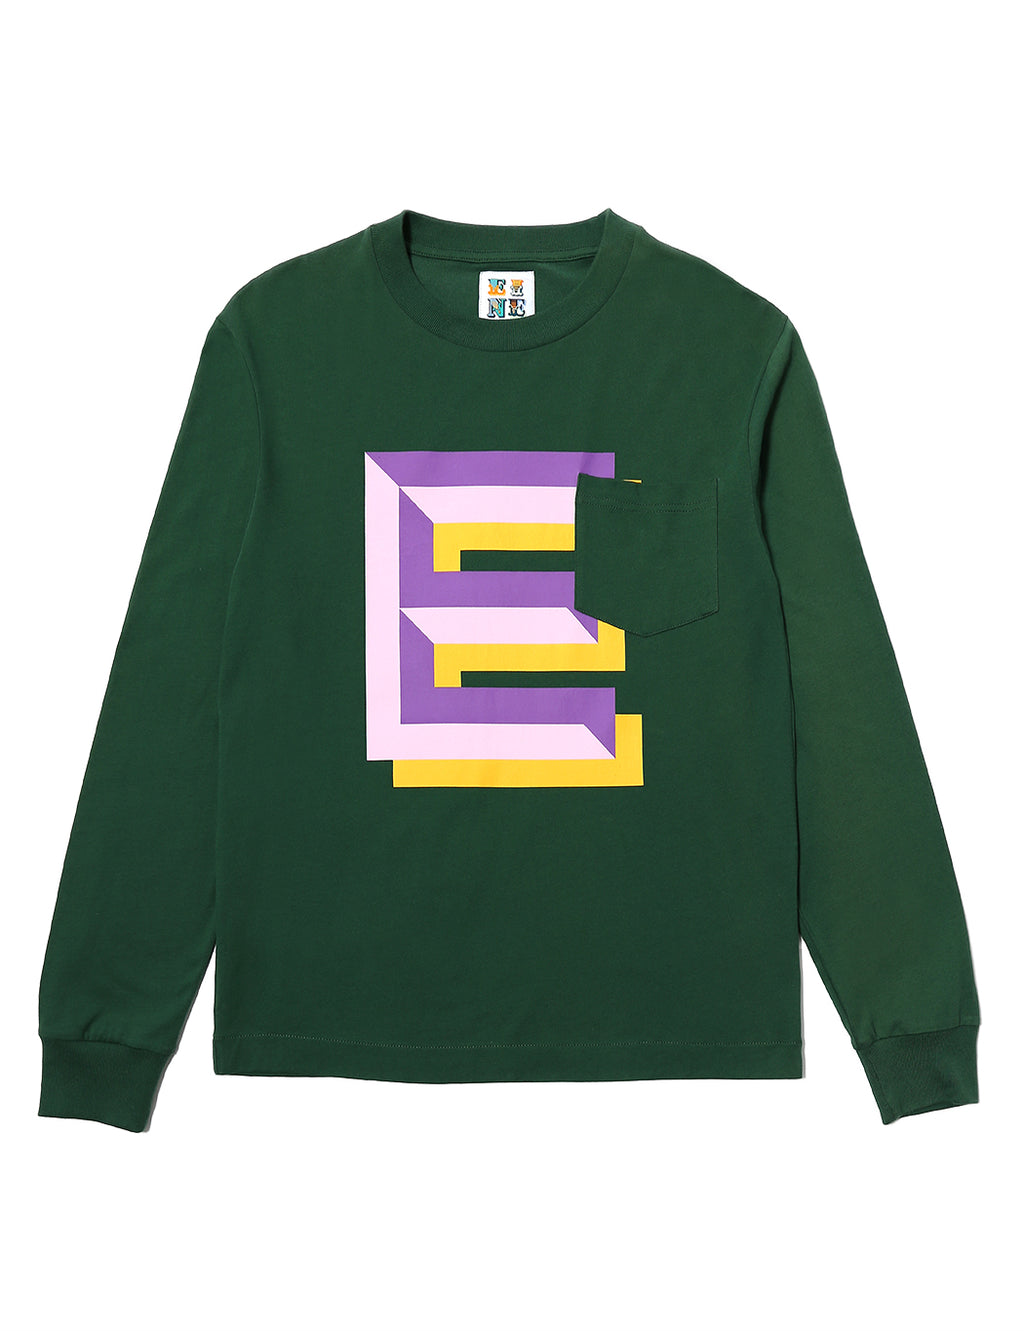 Gaspipe E Pocket L/S T-Shirt - Forrest Green - Eine London by Ben Eine